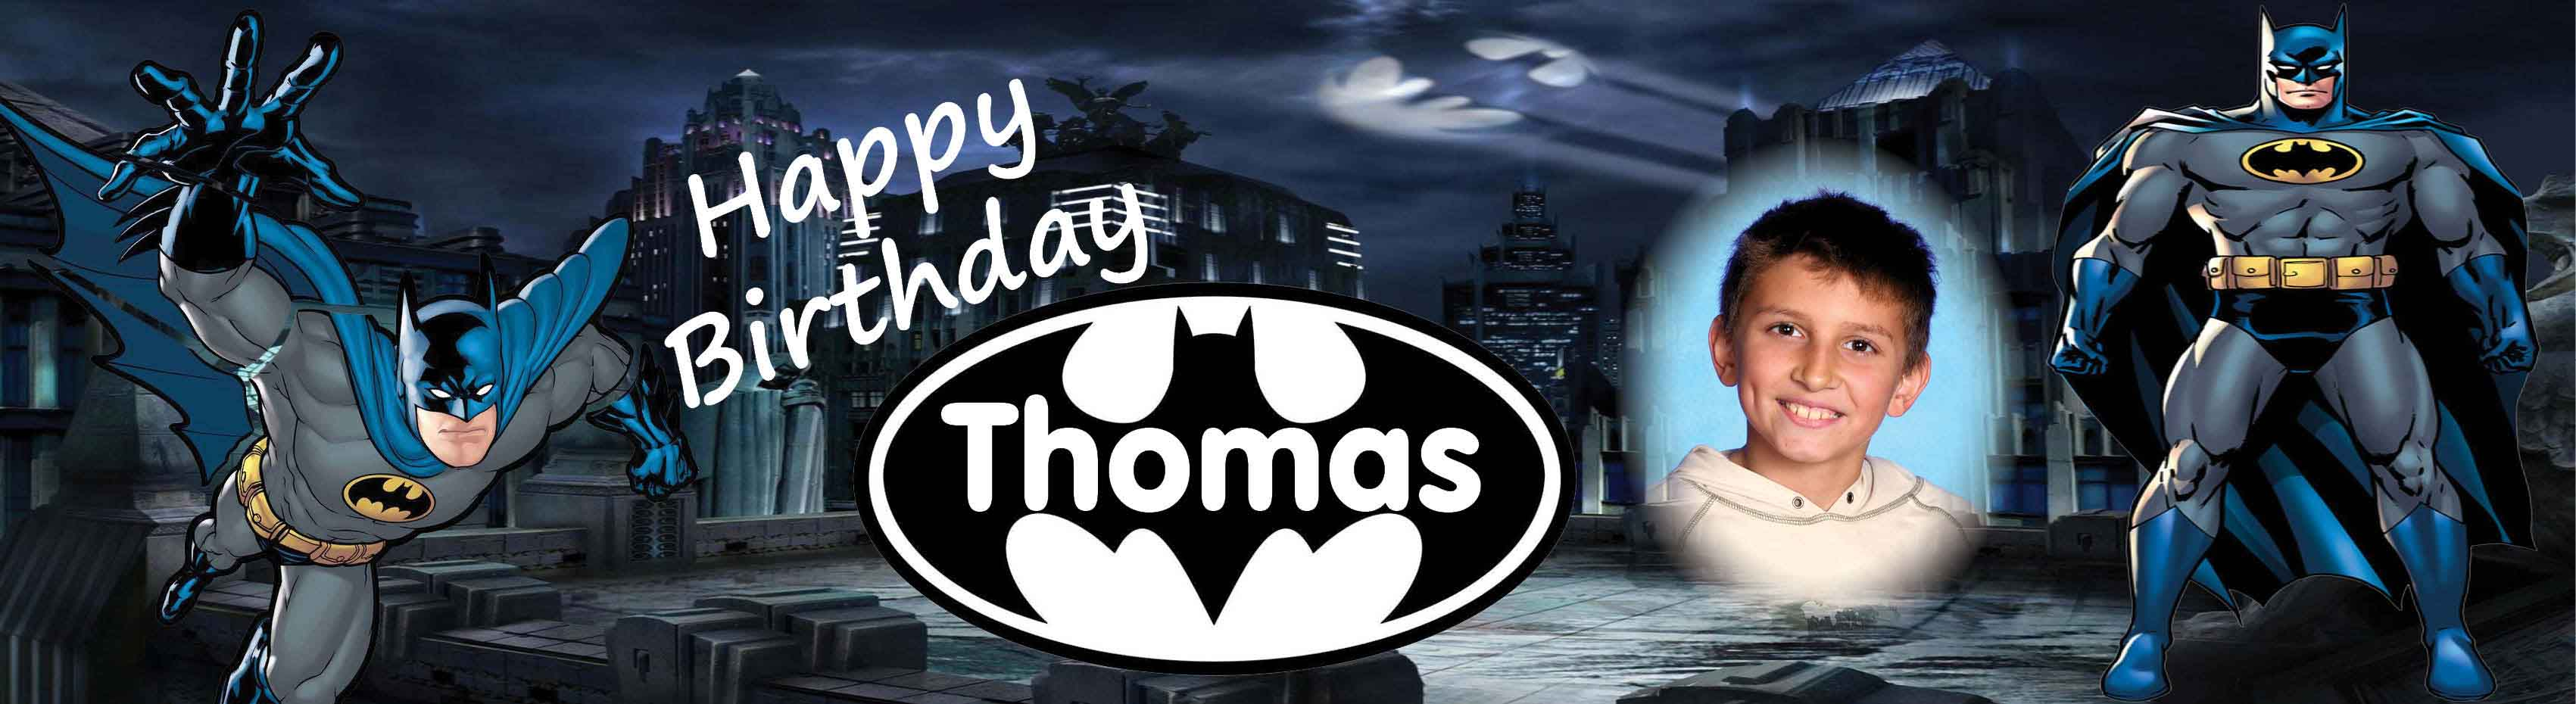 Batman Theme Birthday Banner